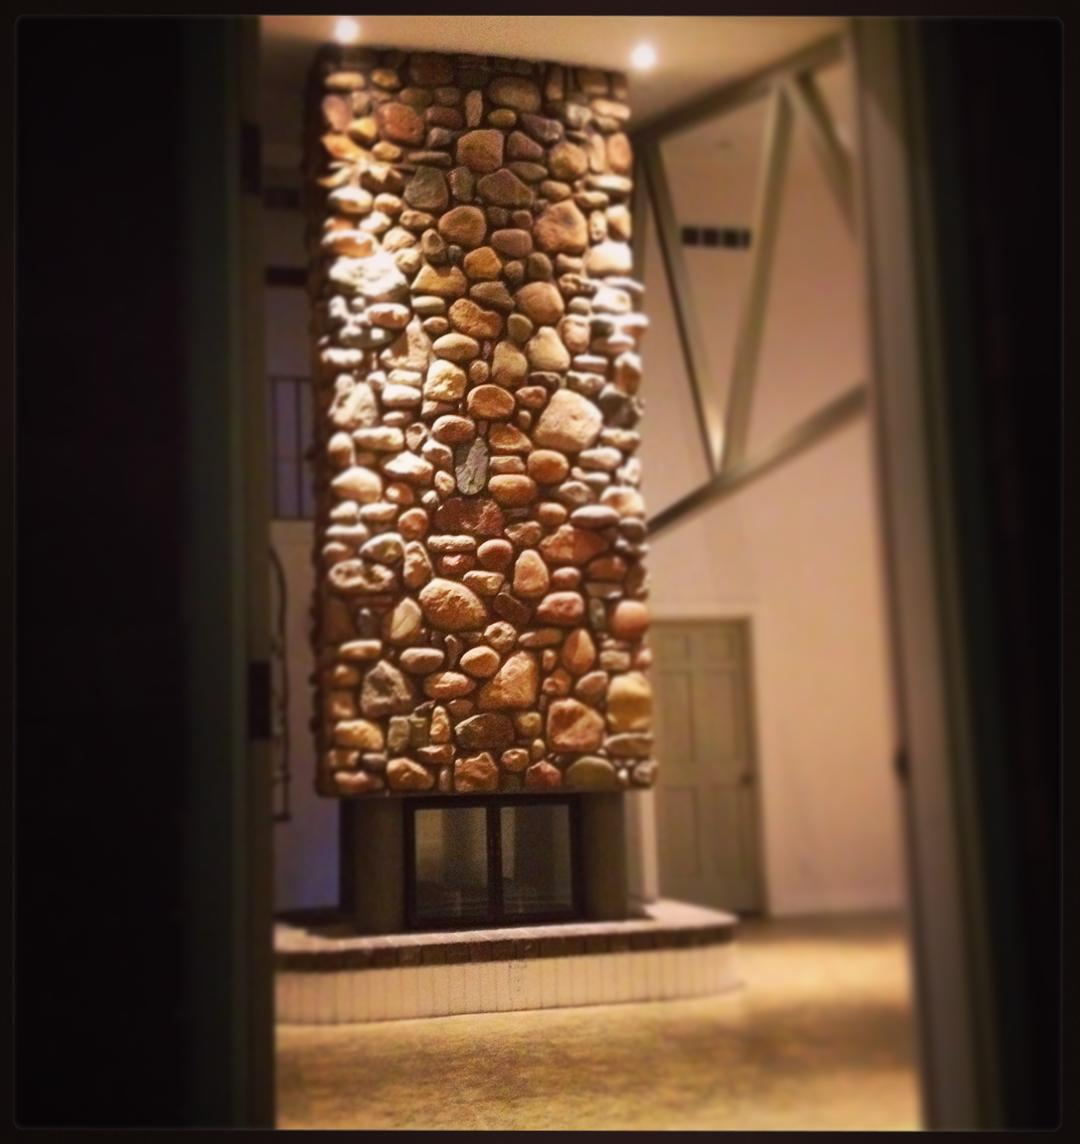 Looking out my office door. #massivefireplace #stonework #voiceministriescamp #voiceministries